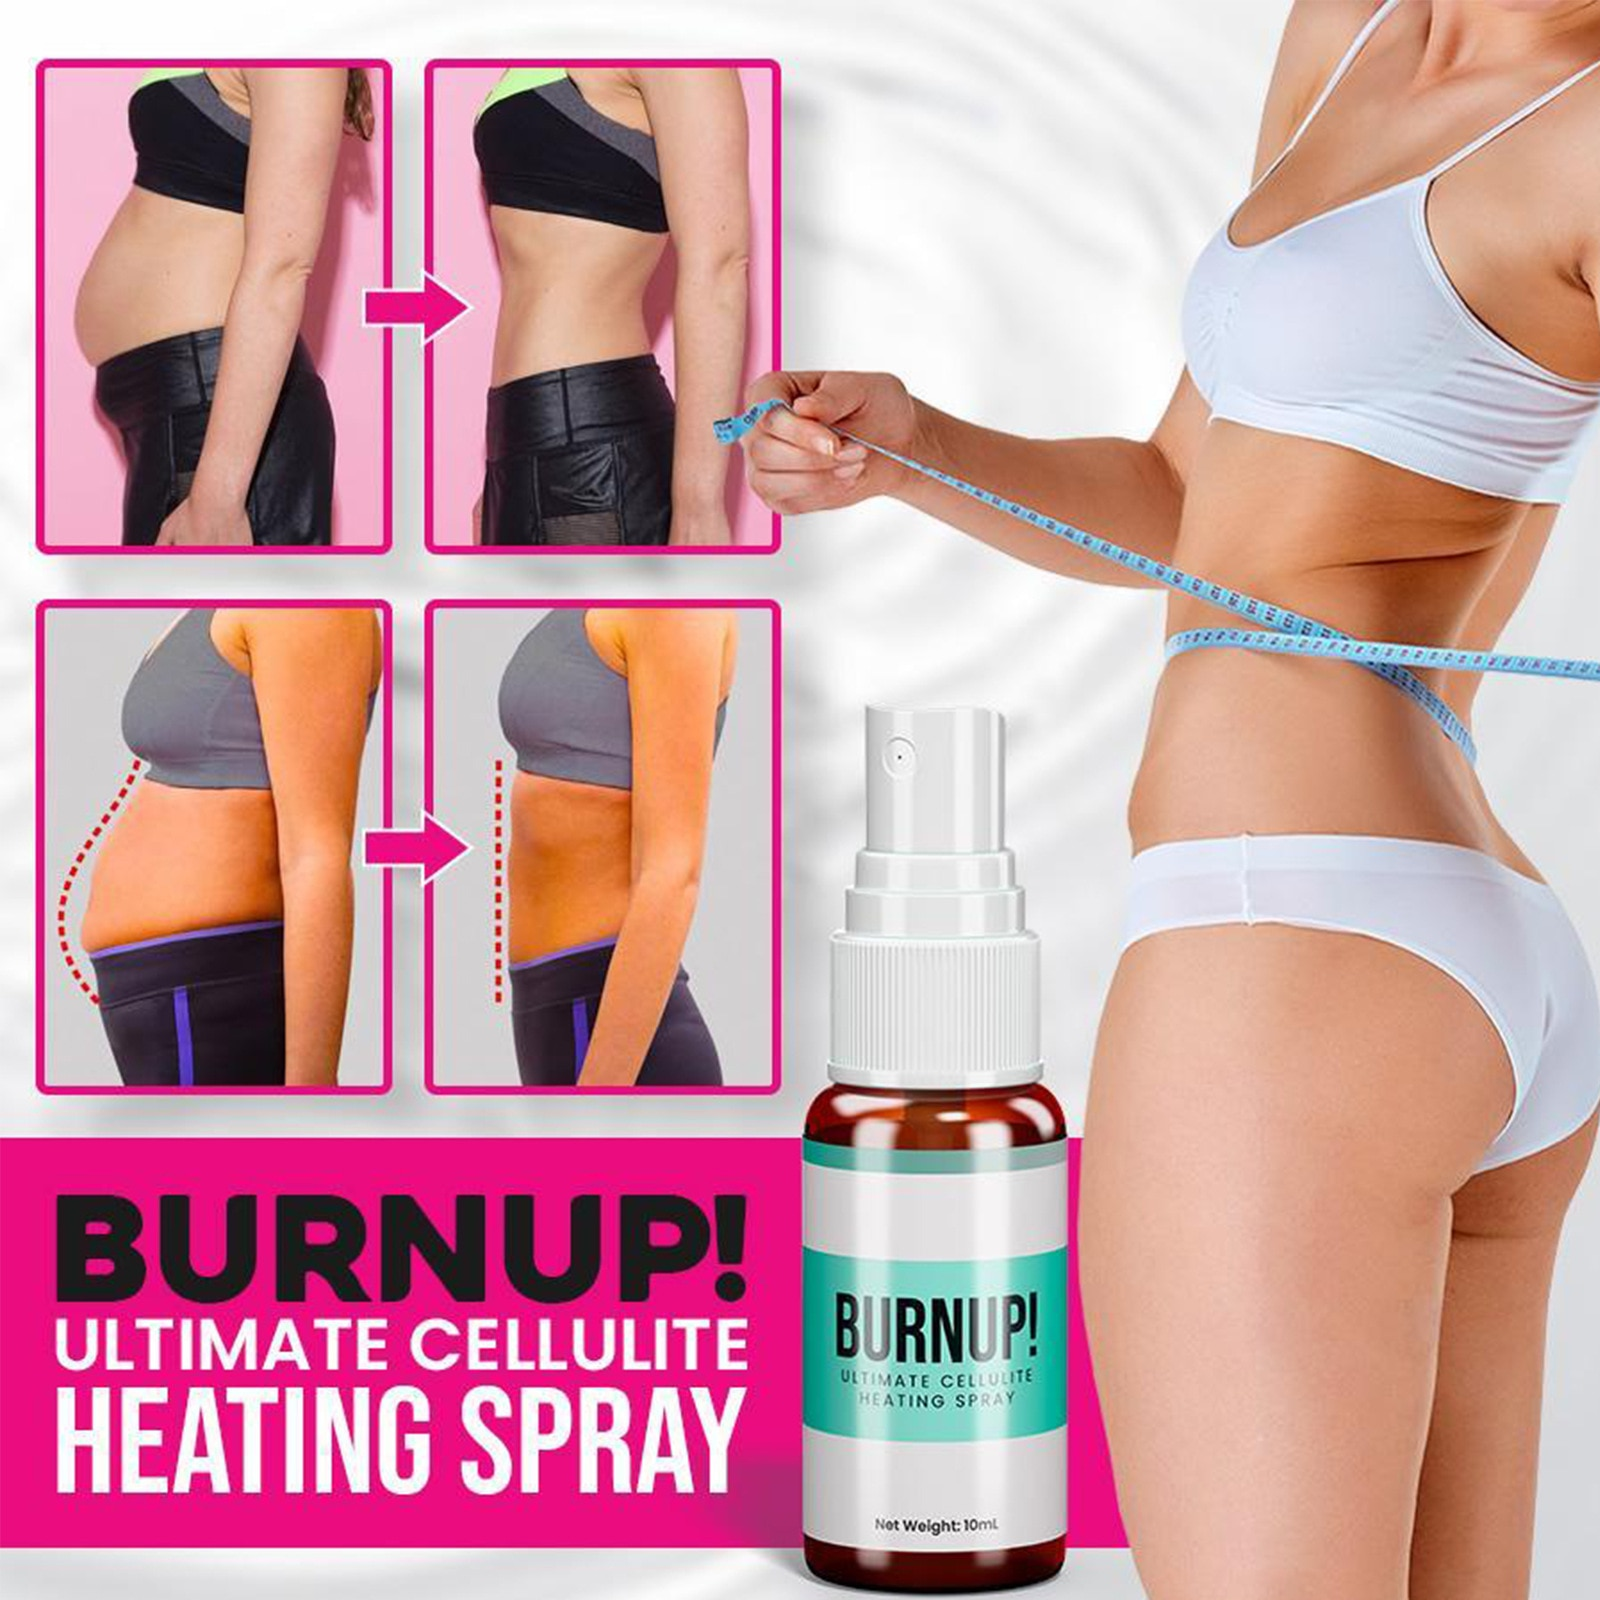 Burn Up Ultimate Cellulite Heating Spray Losing Weight Body Slimming Spray Quick Absorption and Pene